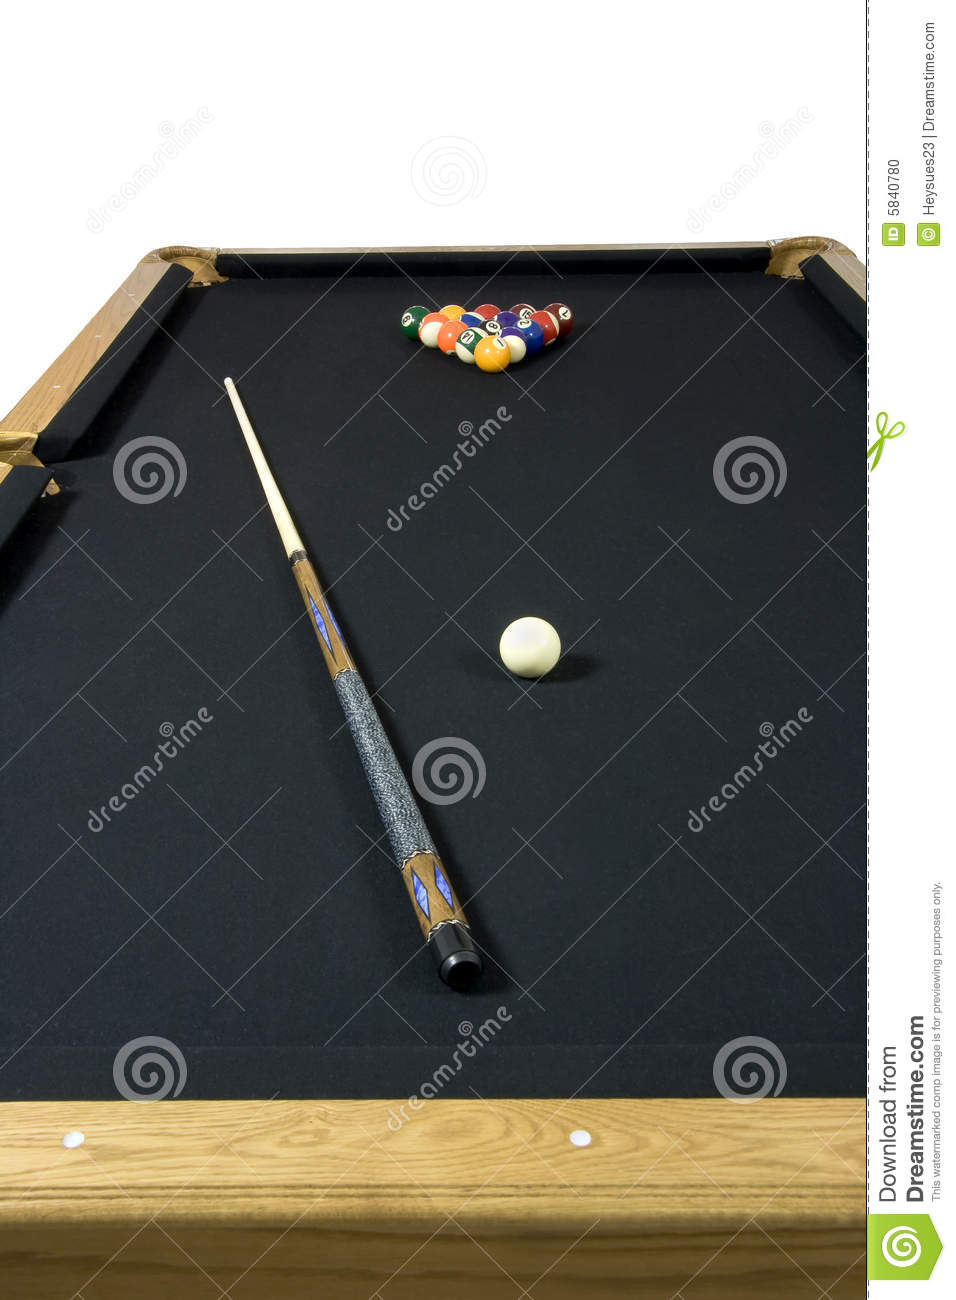 Black Felt Top Pool Table Stock Photo Image Of Green - Black top pool table